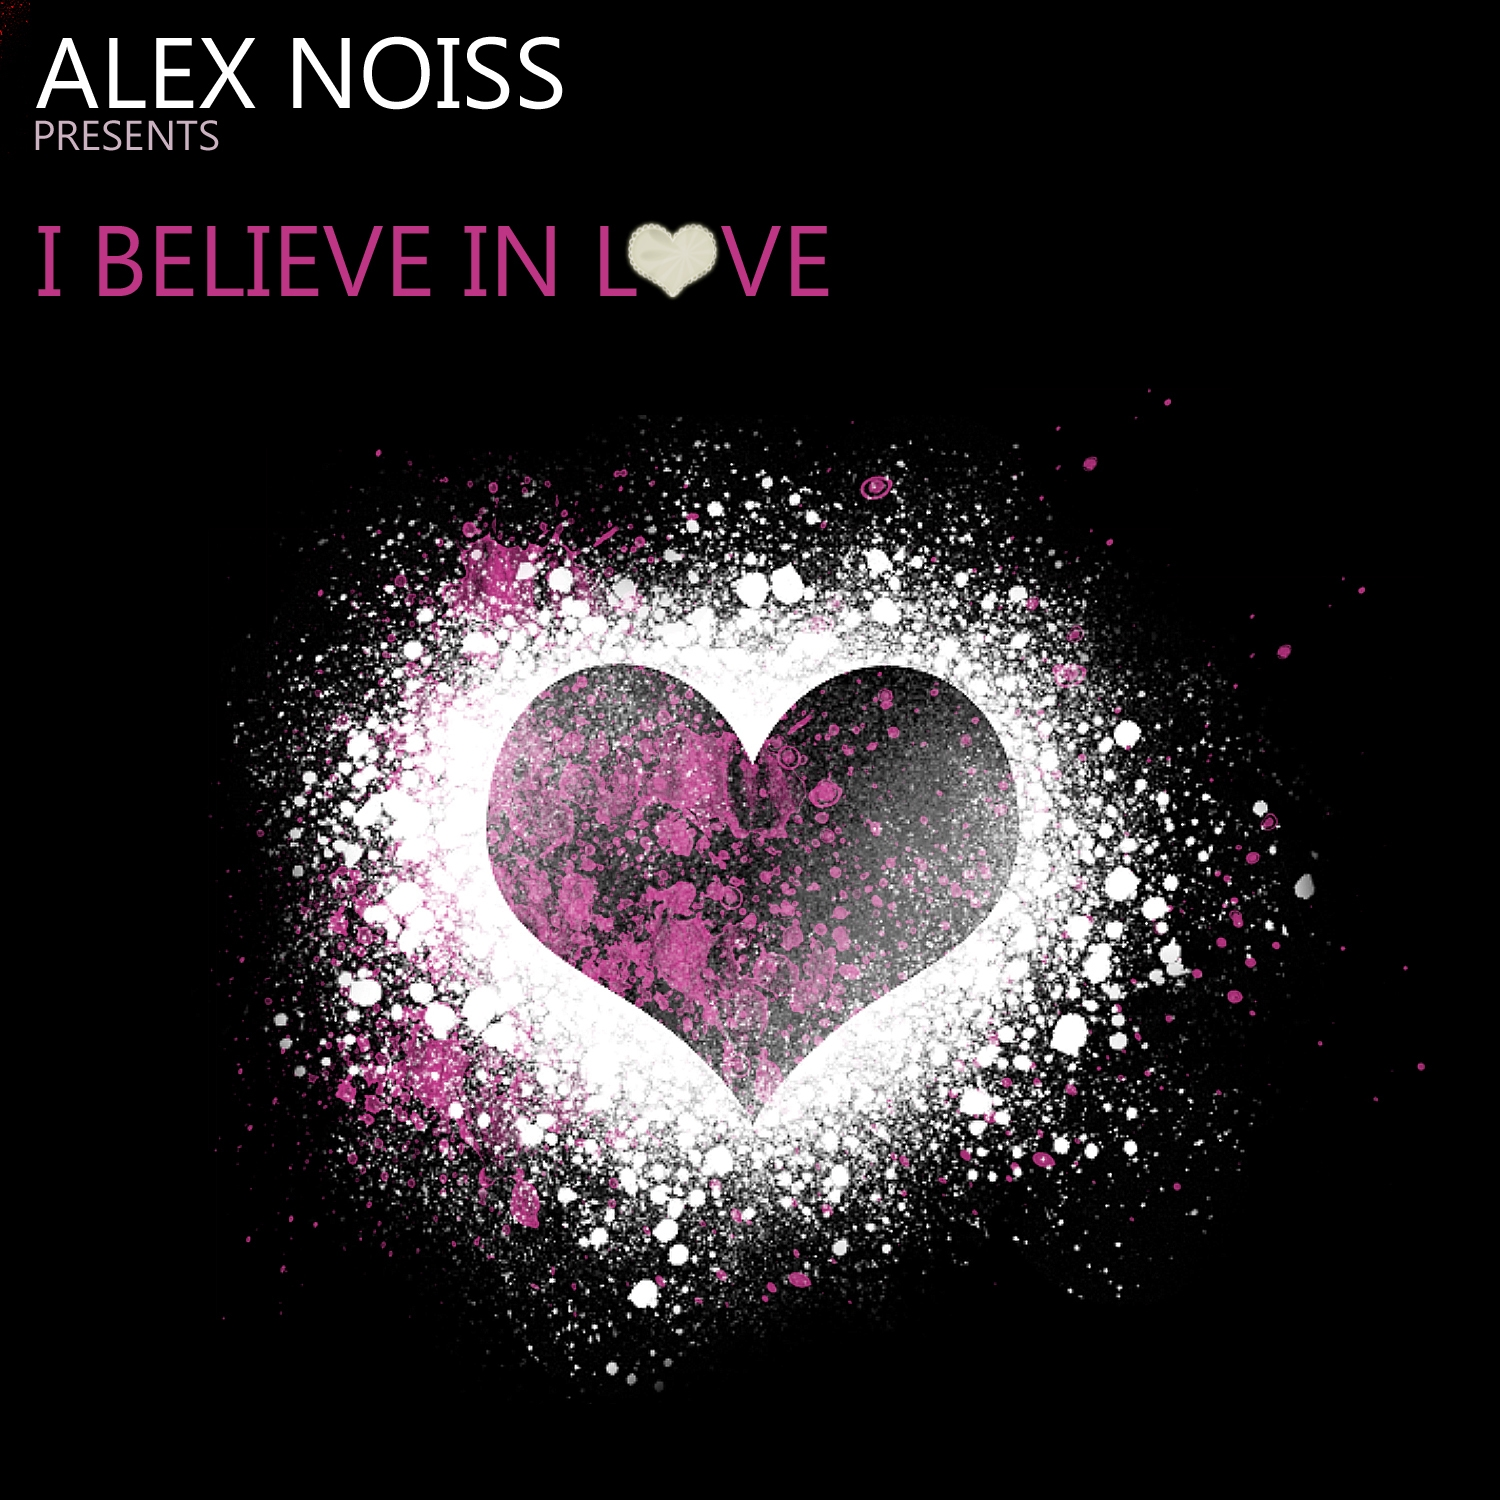 Alex Noiss - I Believe In Love (Radio edit)